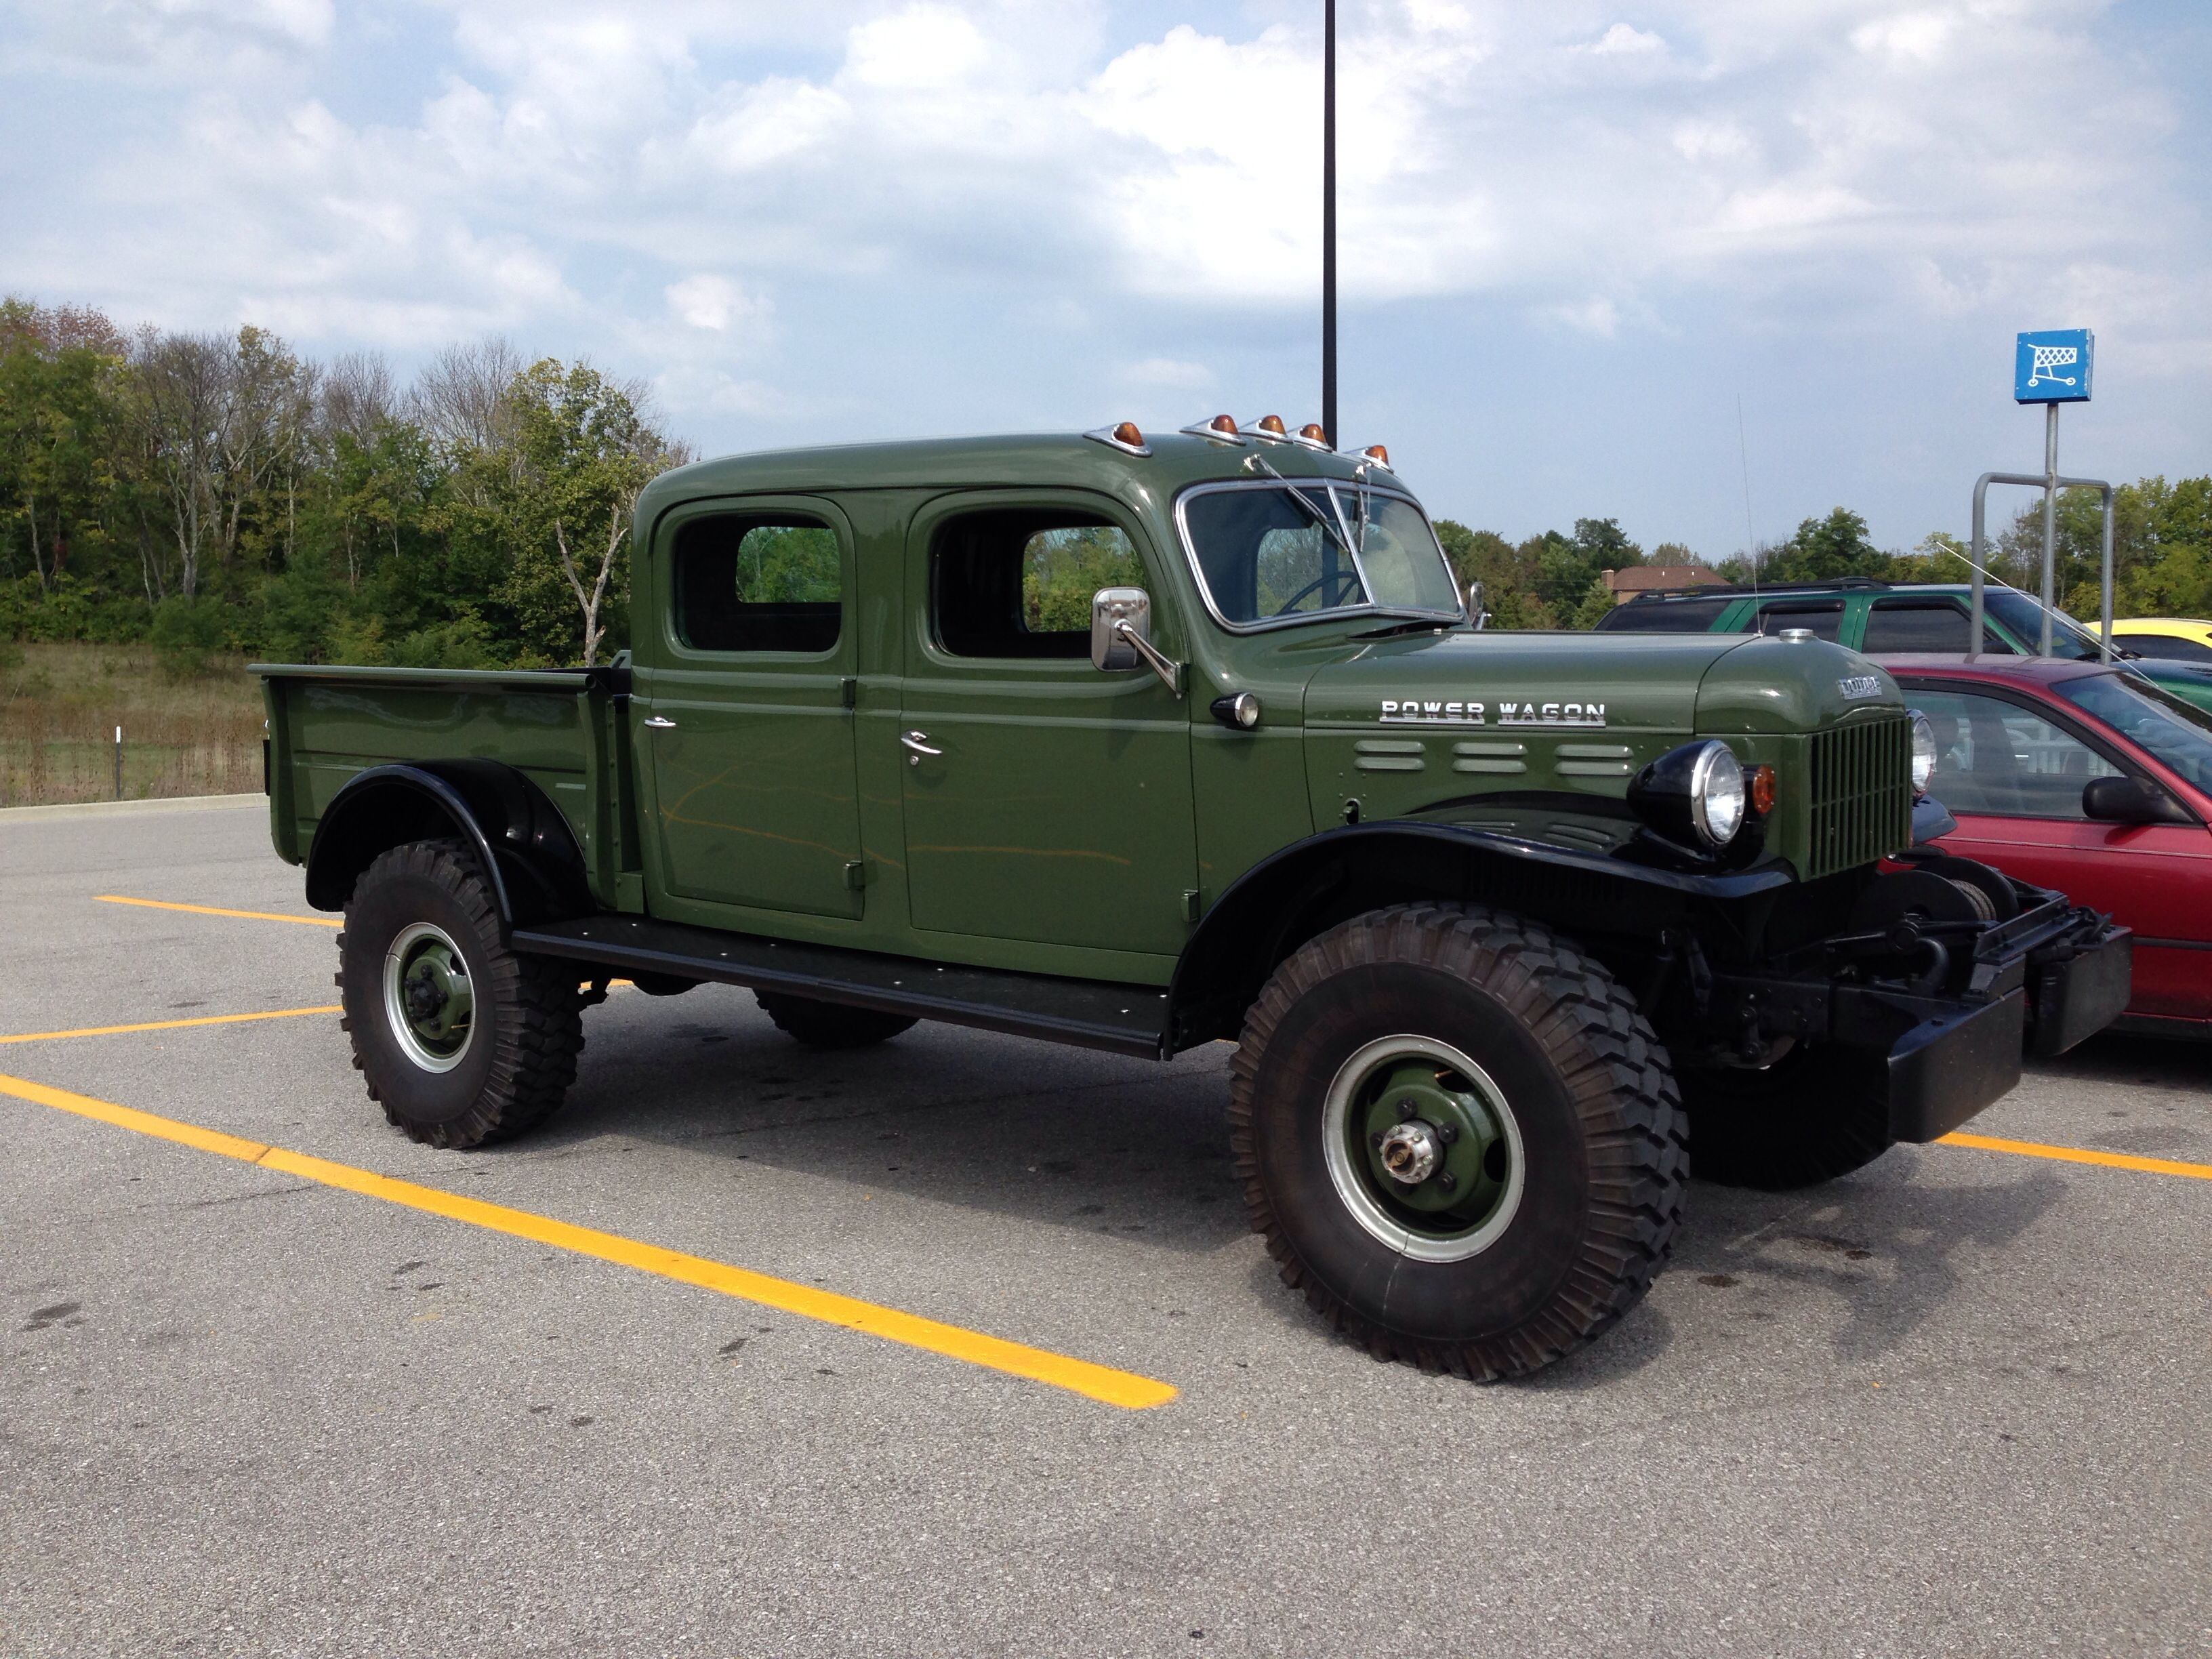 63 Power Wagon >> Dodge Power Wagon Crew Cab I Want Vehicles I Want Pinterest